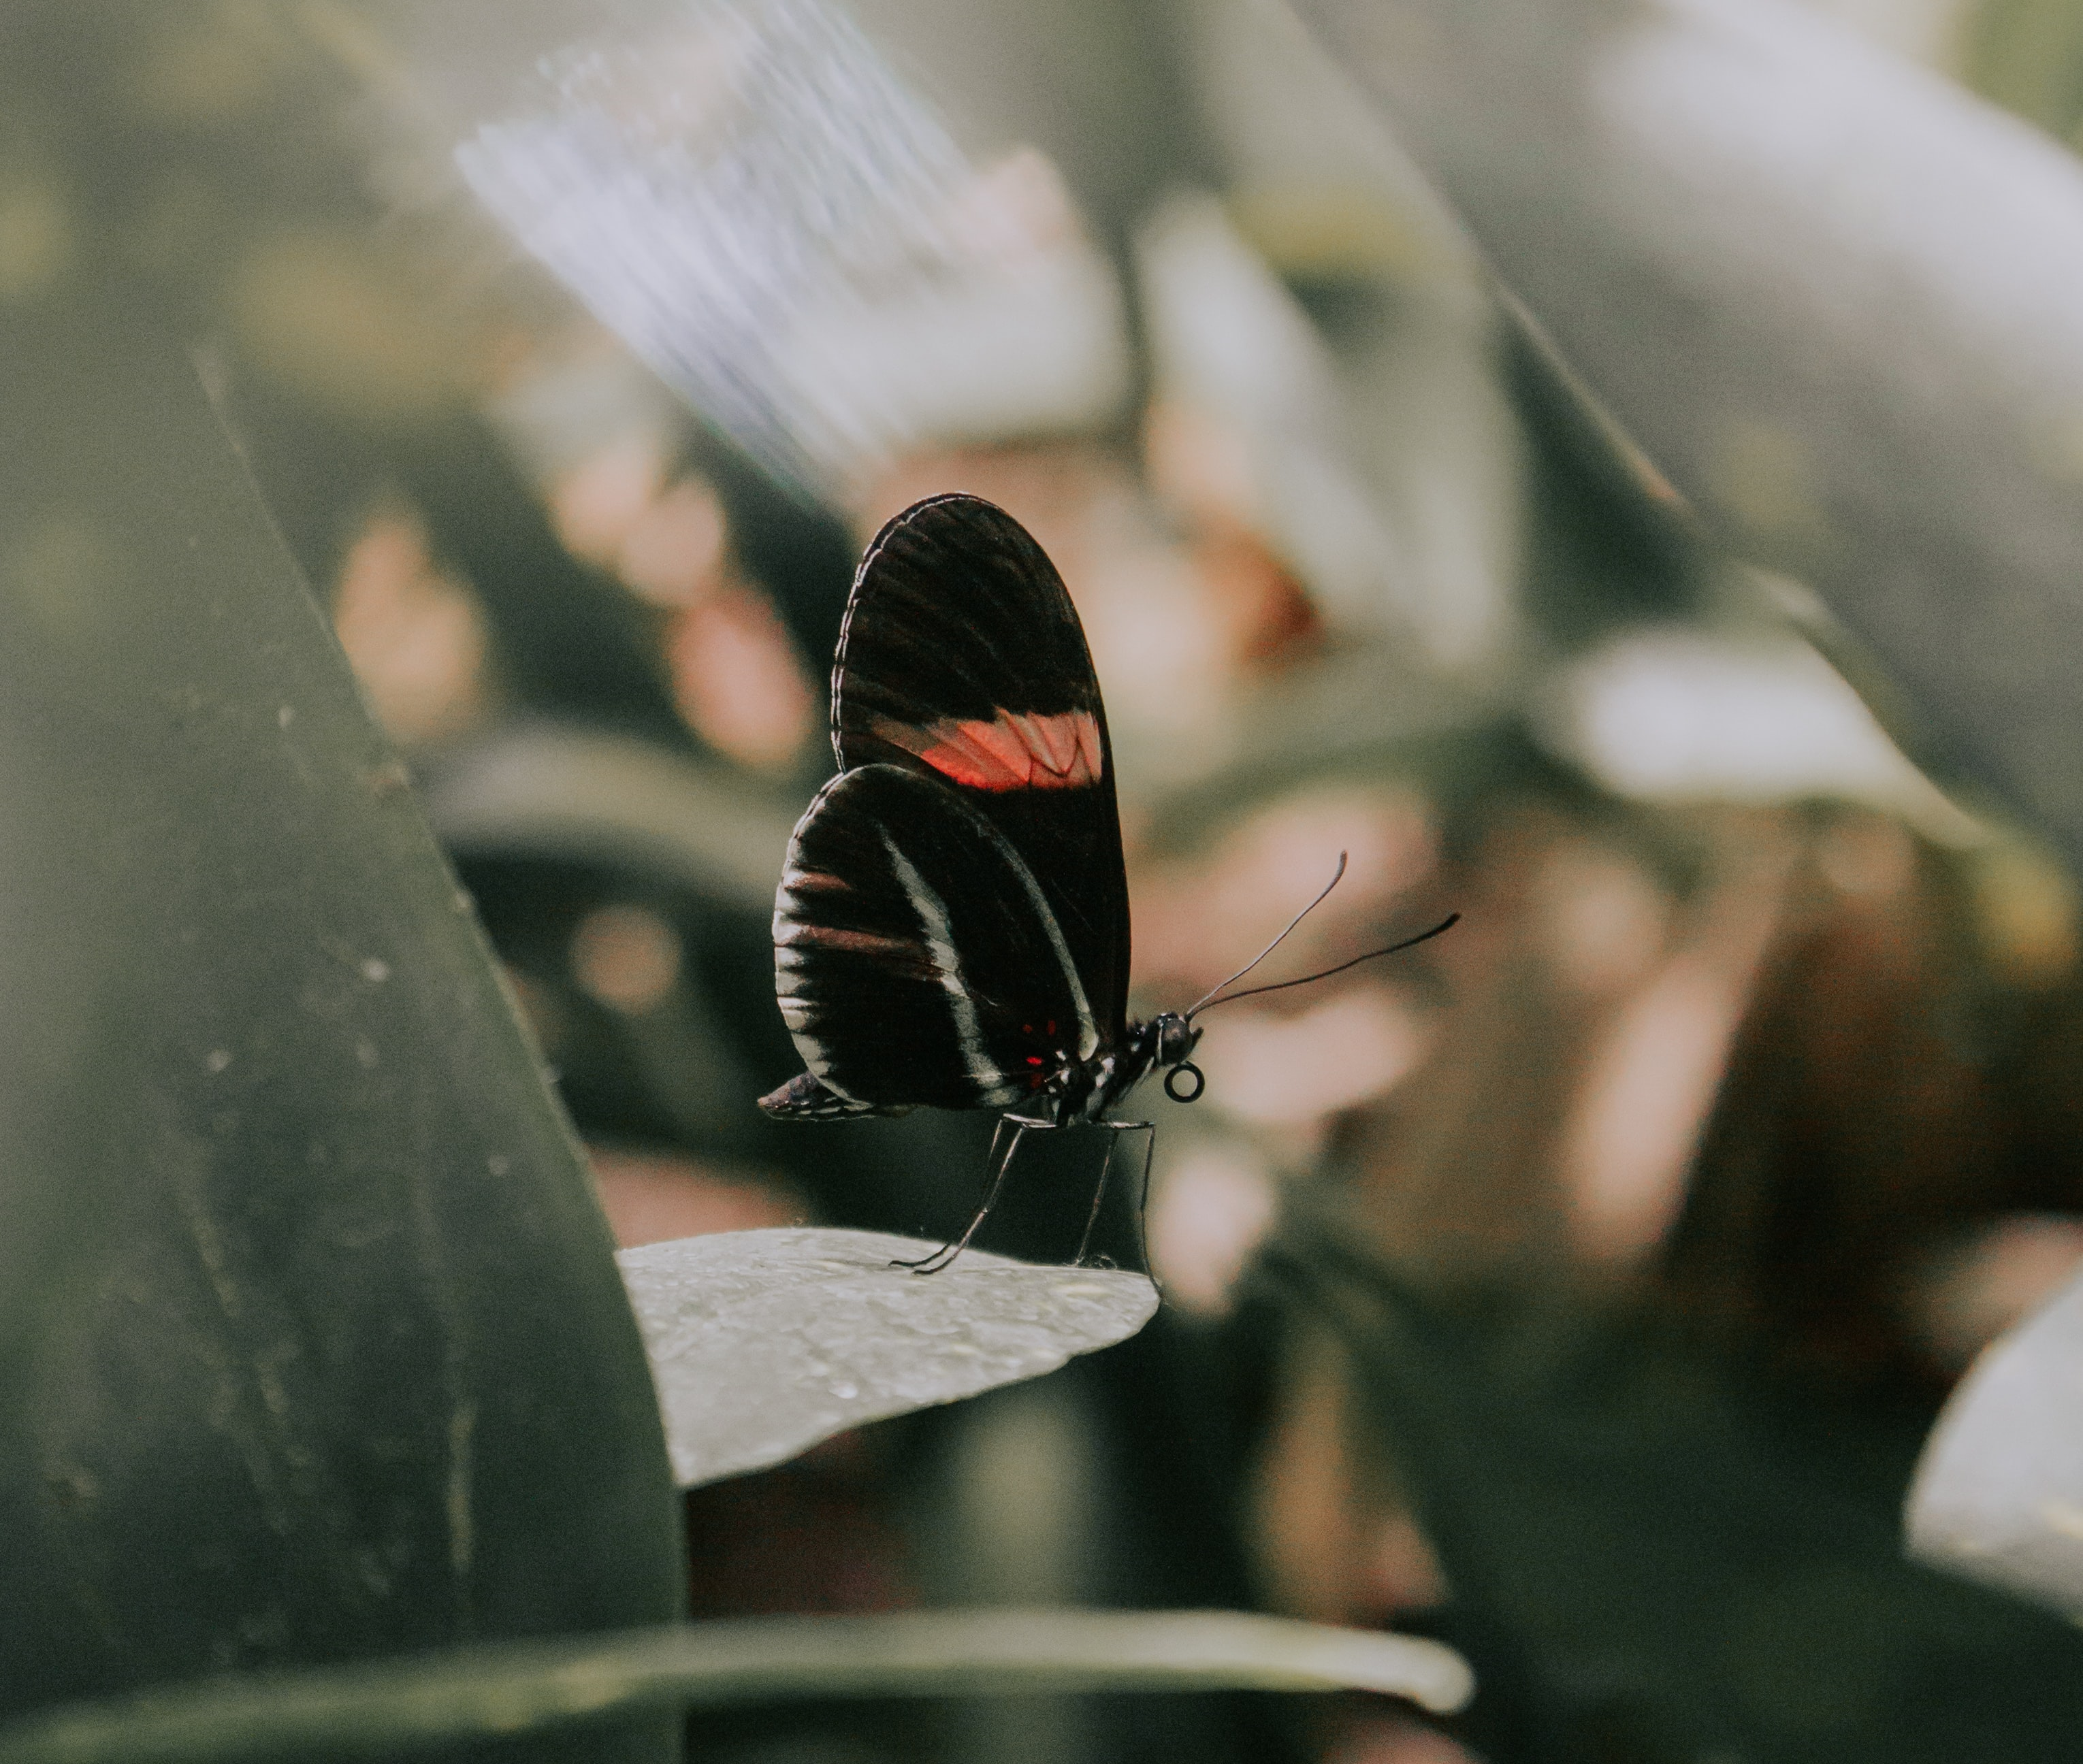 The Black Butterfly pain stories